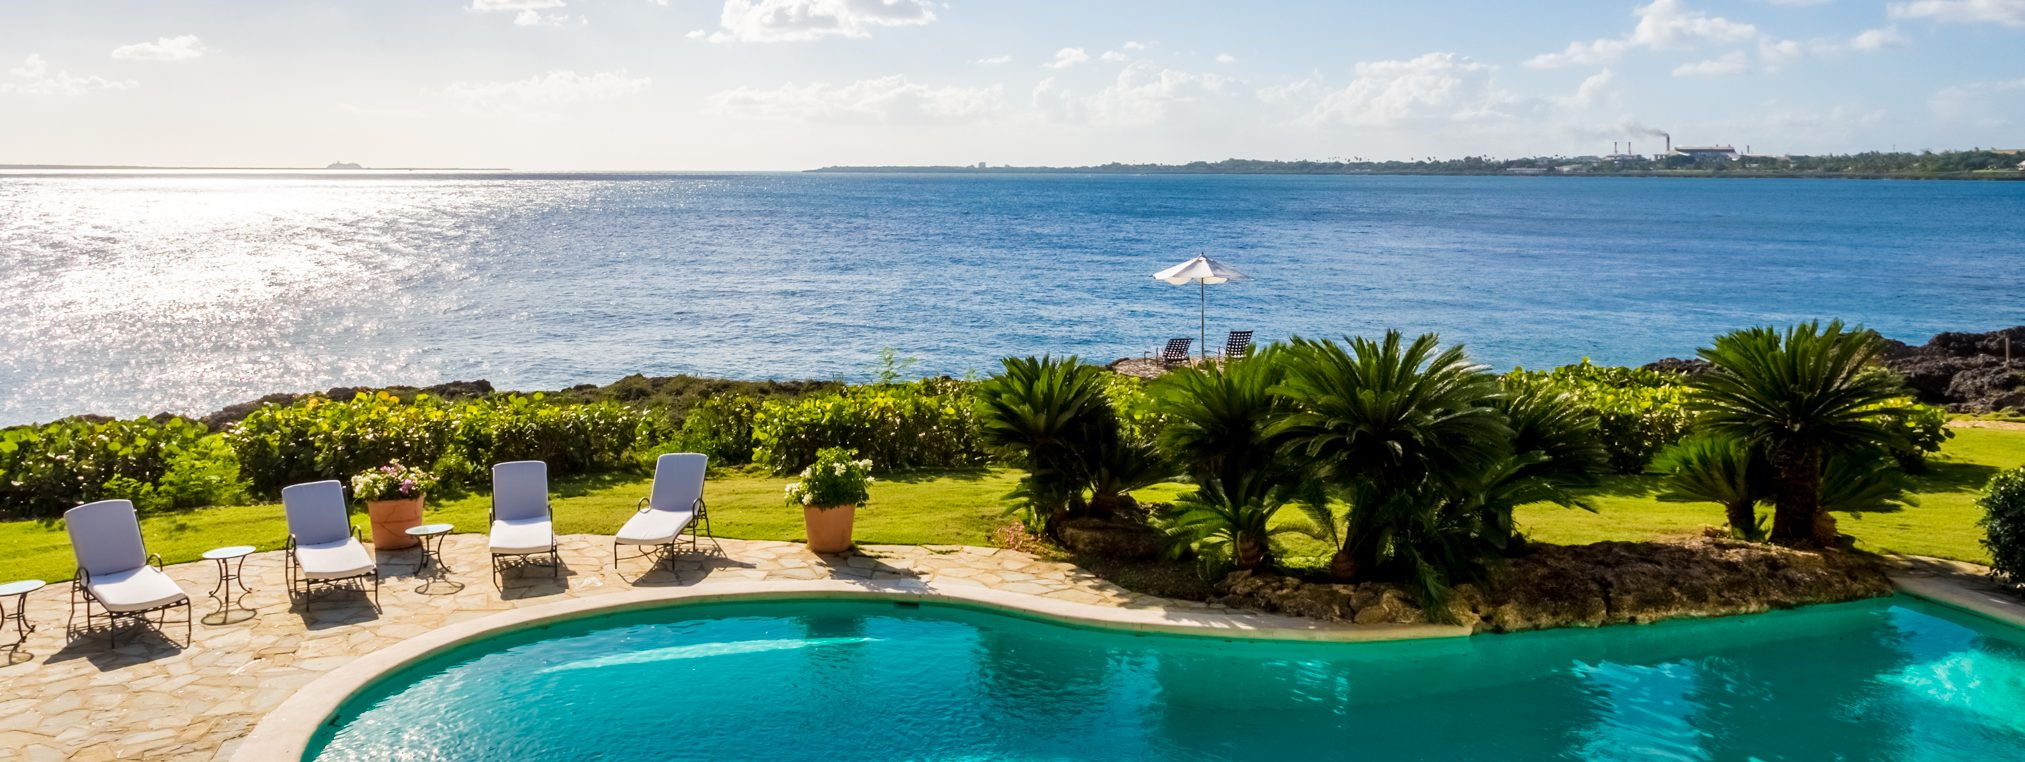 DRASTICALLY REDUCED – Punta Aguila 15 & 16 at Casa de Campo Resort